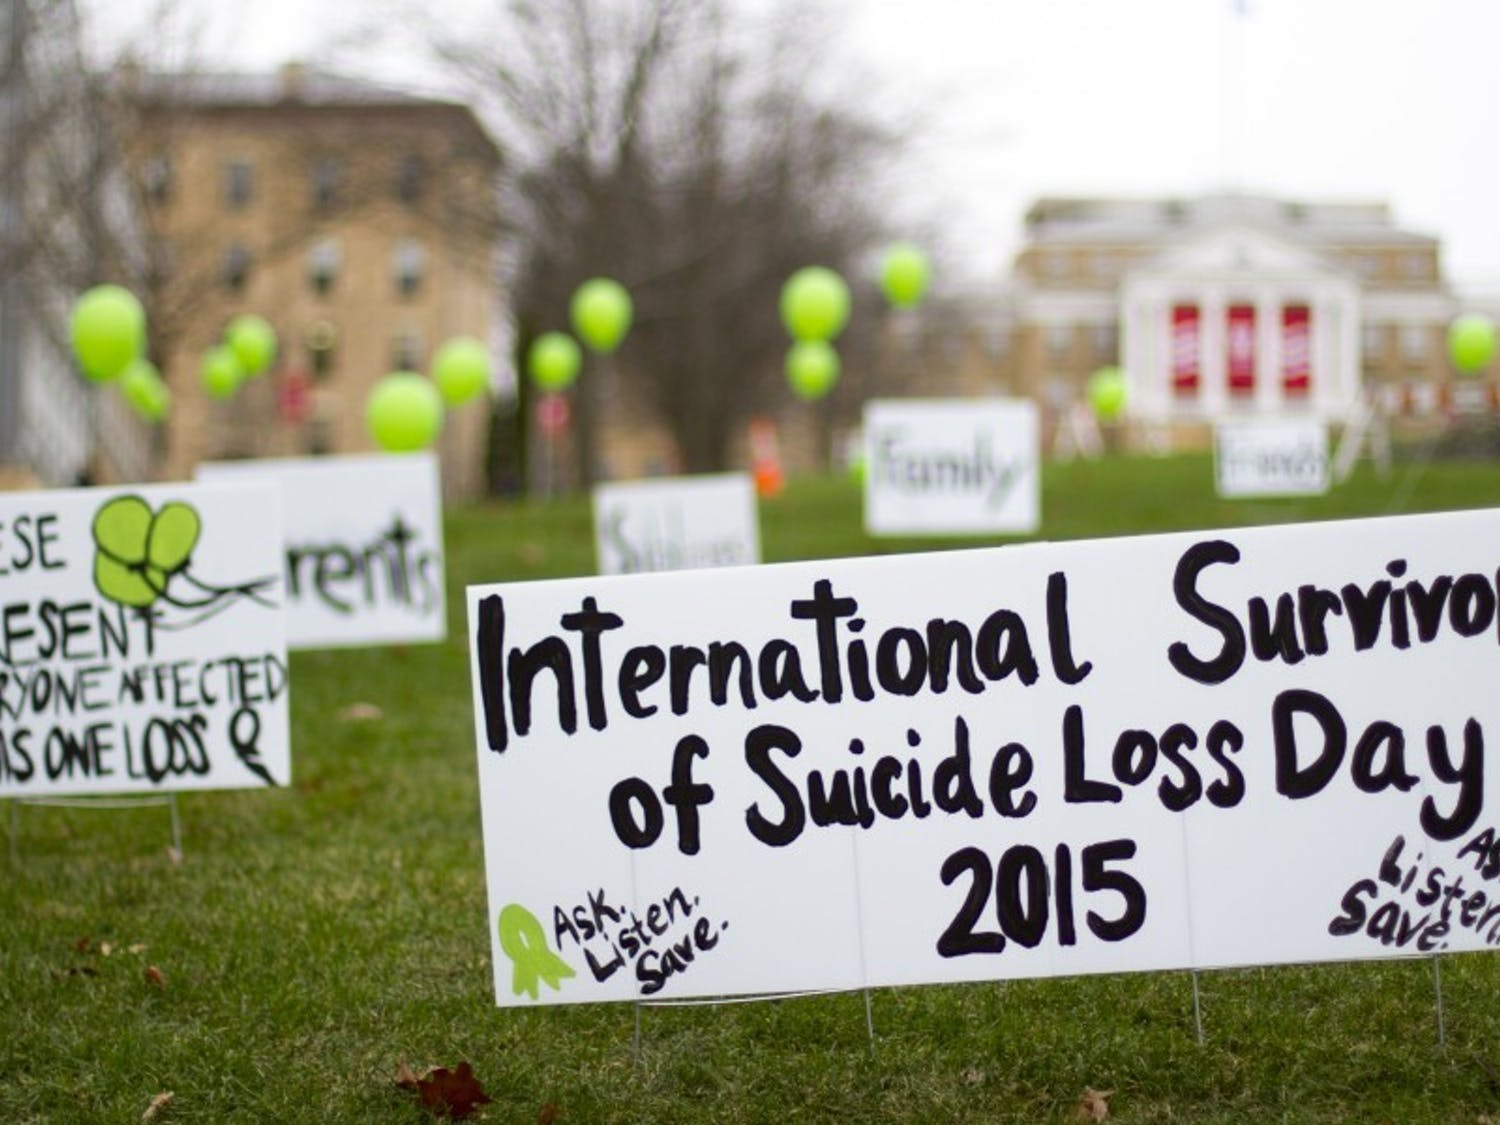 Gov. Tony Evers attempts to lower the stigma surrounding suicide by asserting the month of September as Suicide Prevention Month.